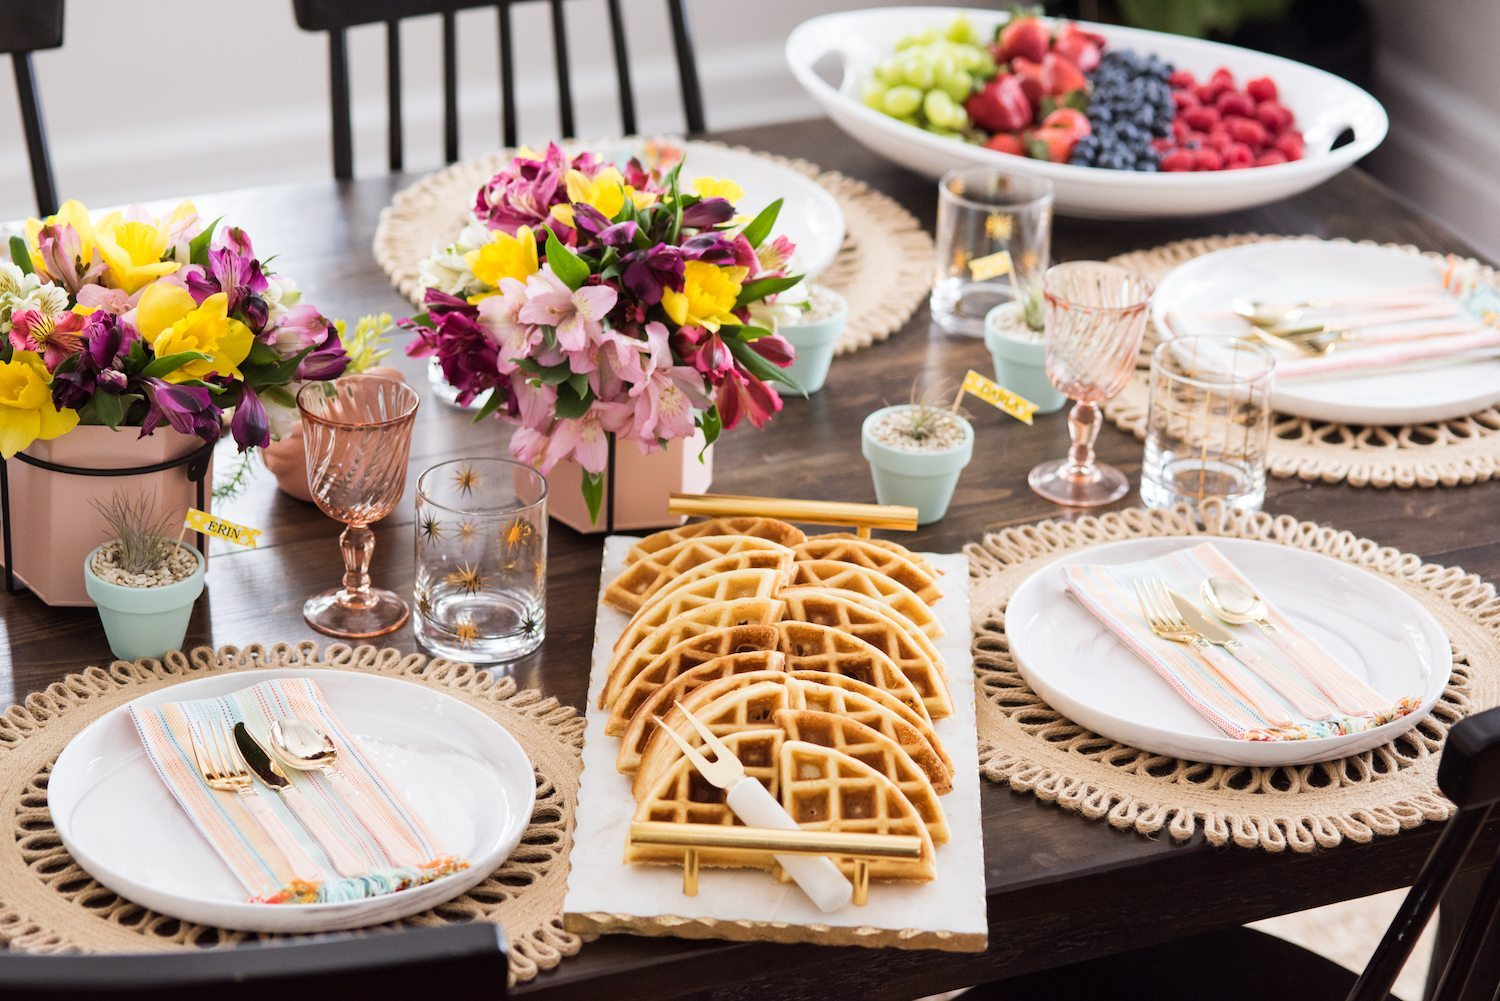 Click through for details on creating a perfectly festive and fresh spring brunch table! Perfect for Easter, Mother's Day, bridal showers and more please loads of additional entertaining tips, party ideas, recipes and more from @cydconverse